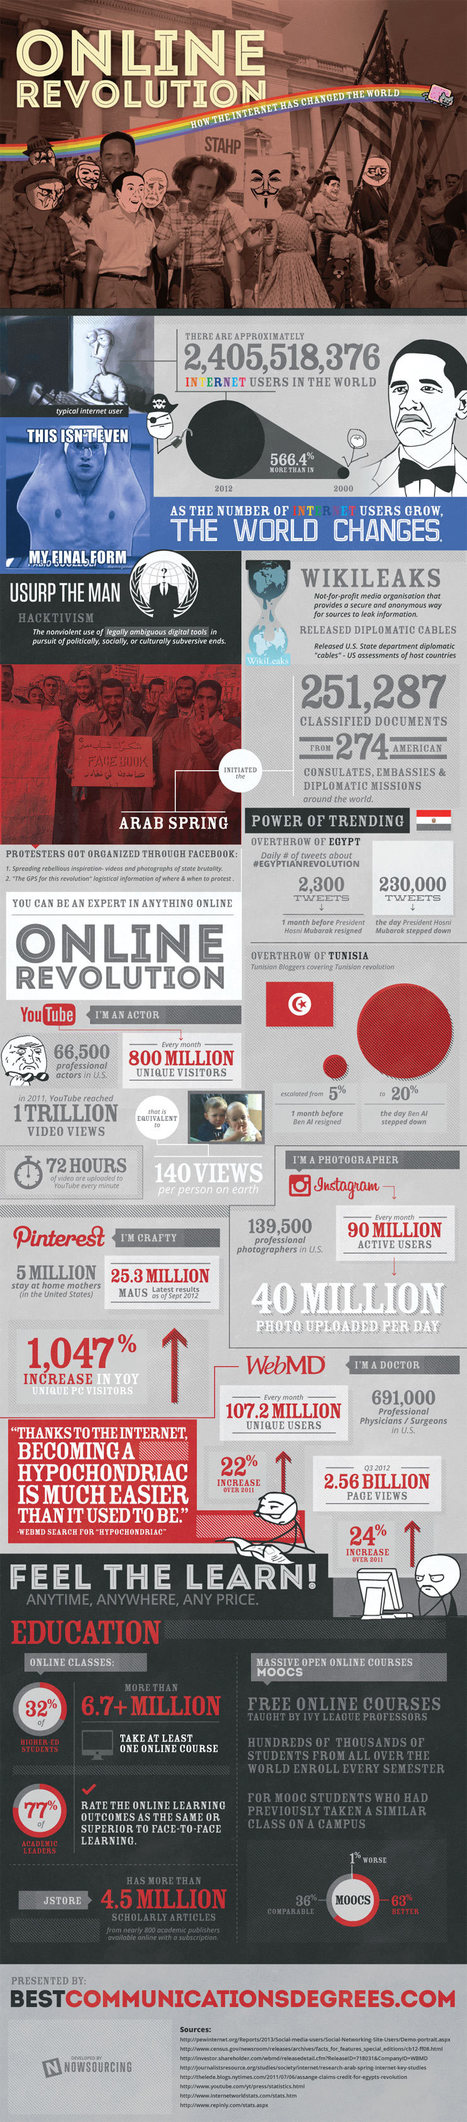 How The Internet and Social Media has changed the World – infographic /@BerriePelser | Integrated Brand Communications | CELESTICA | Scoop.it